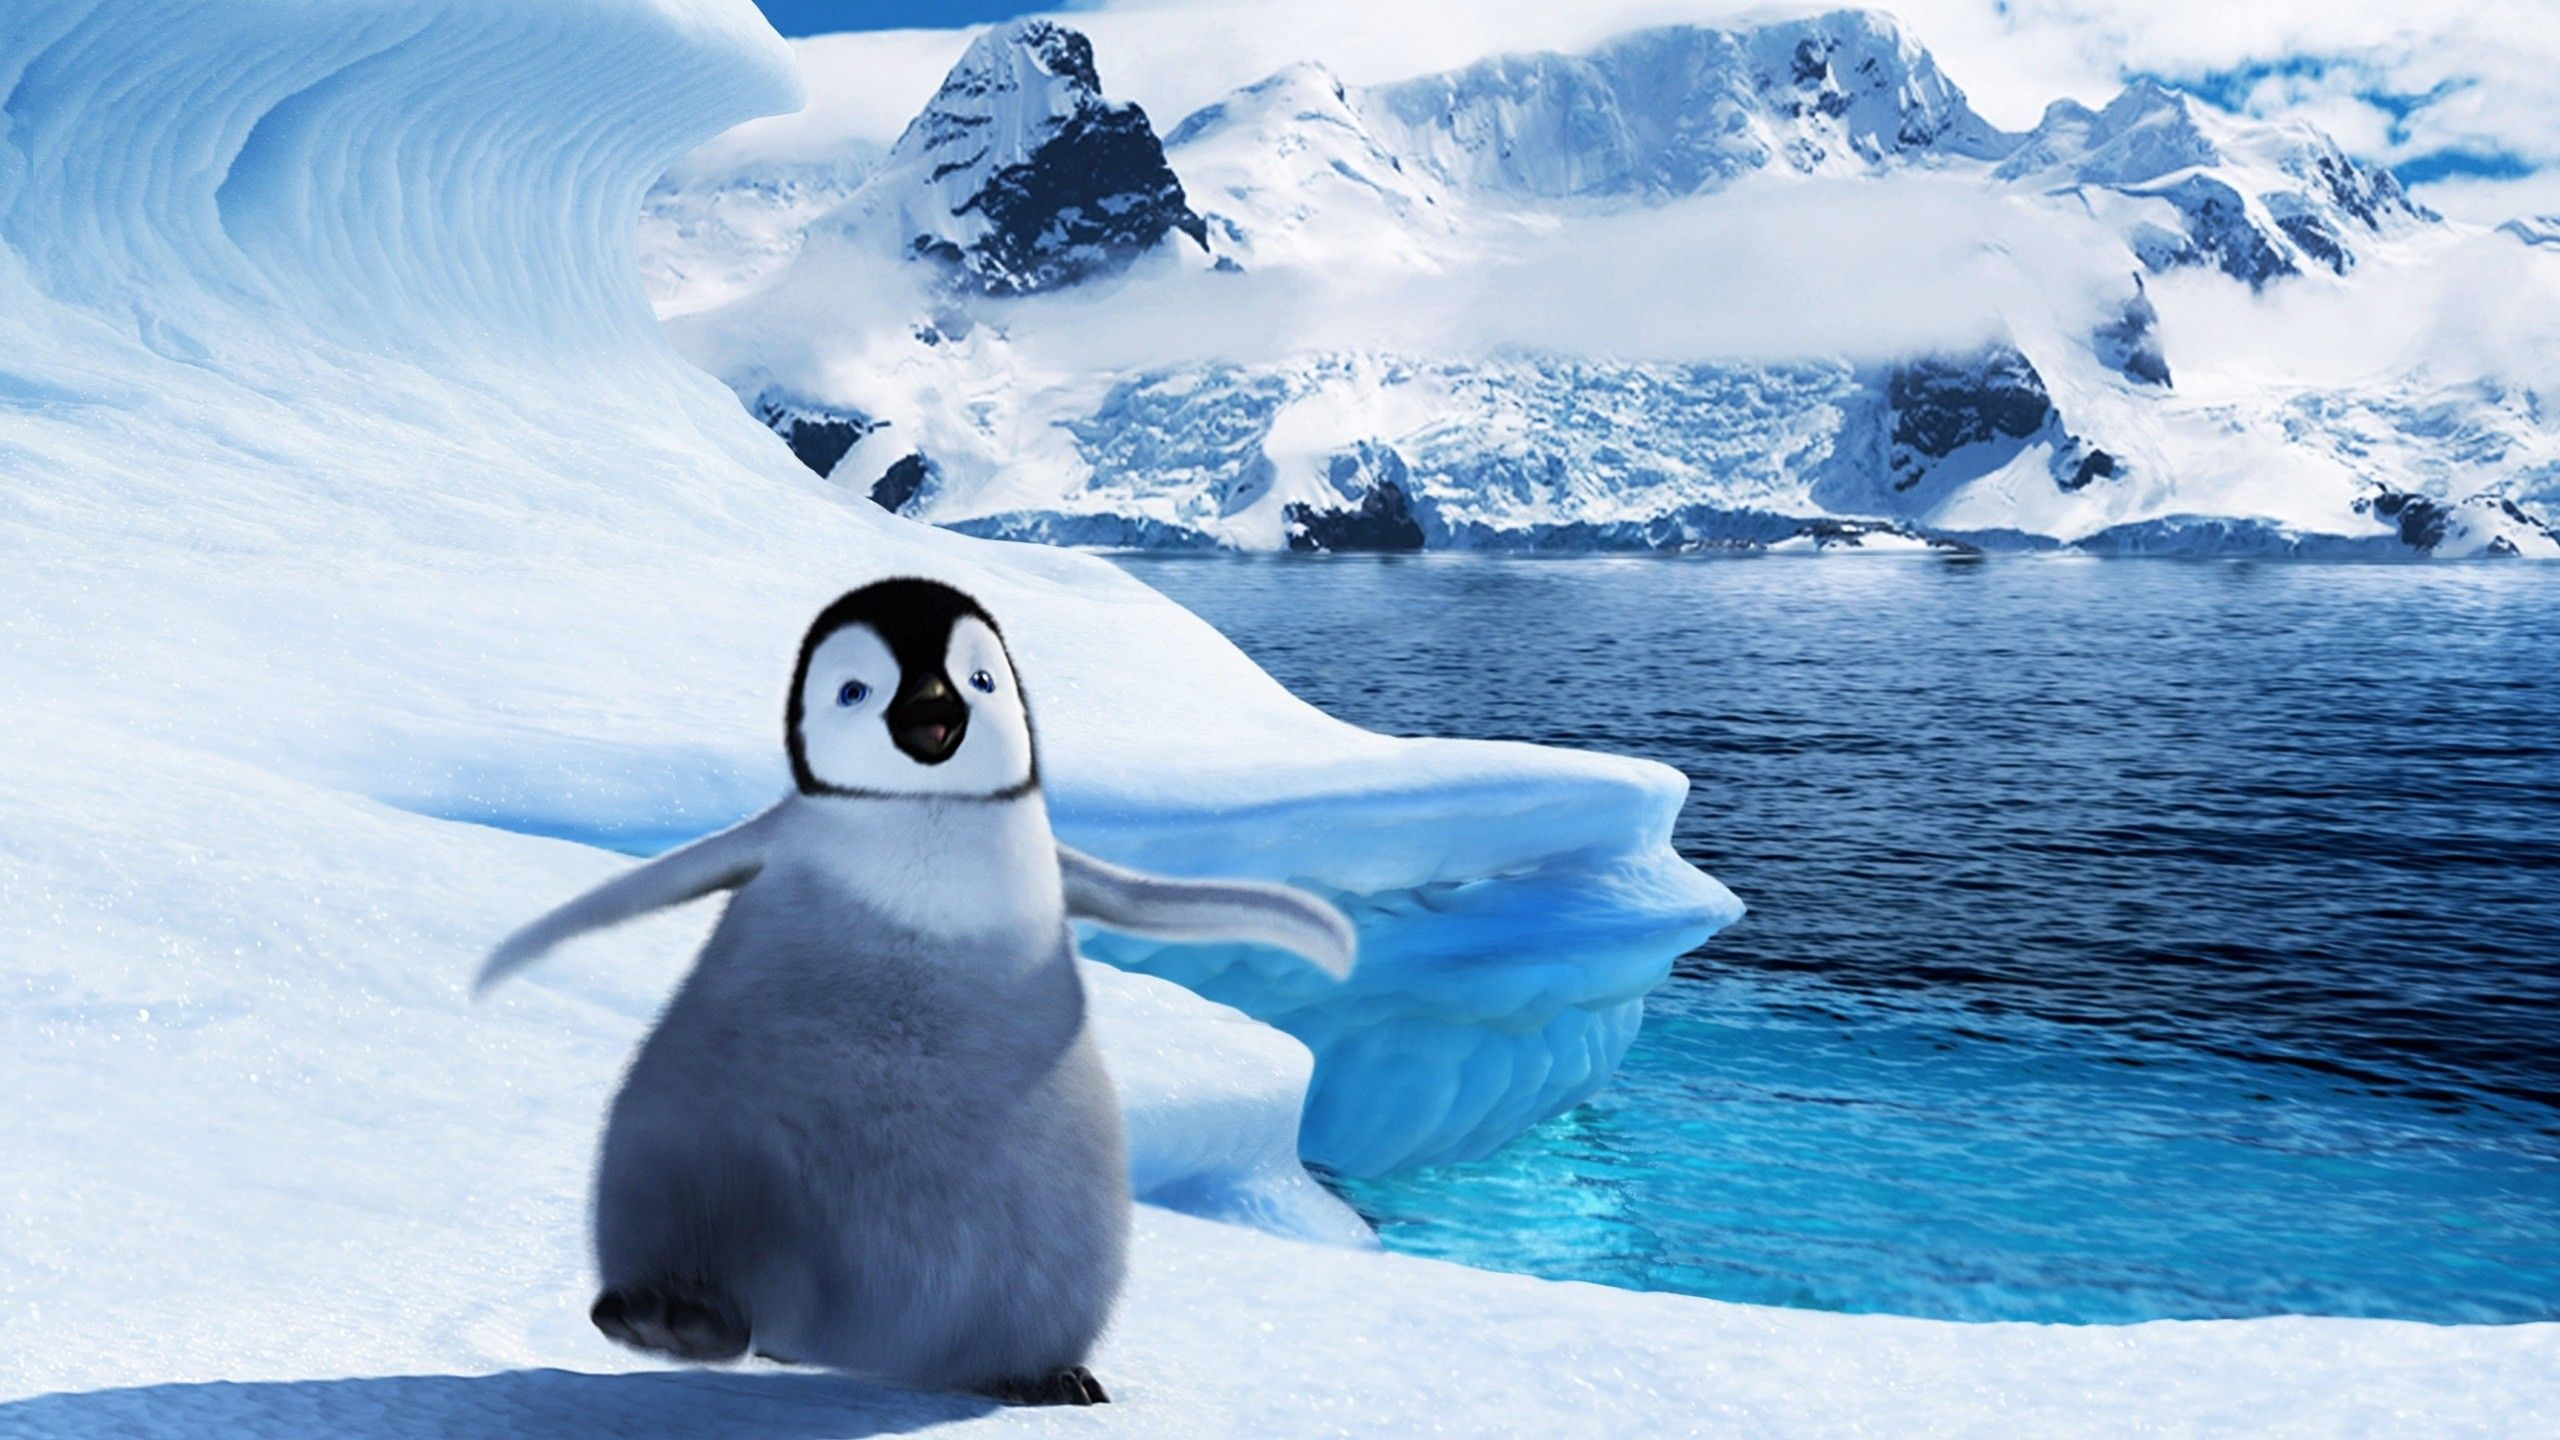 Cute Penguin Backgrounds 2560x1440